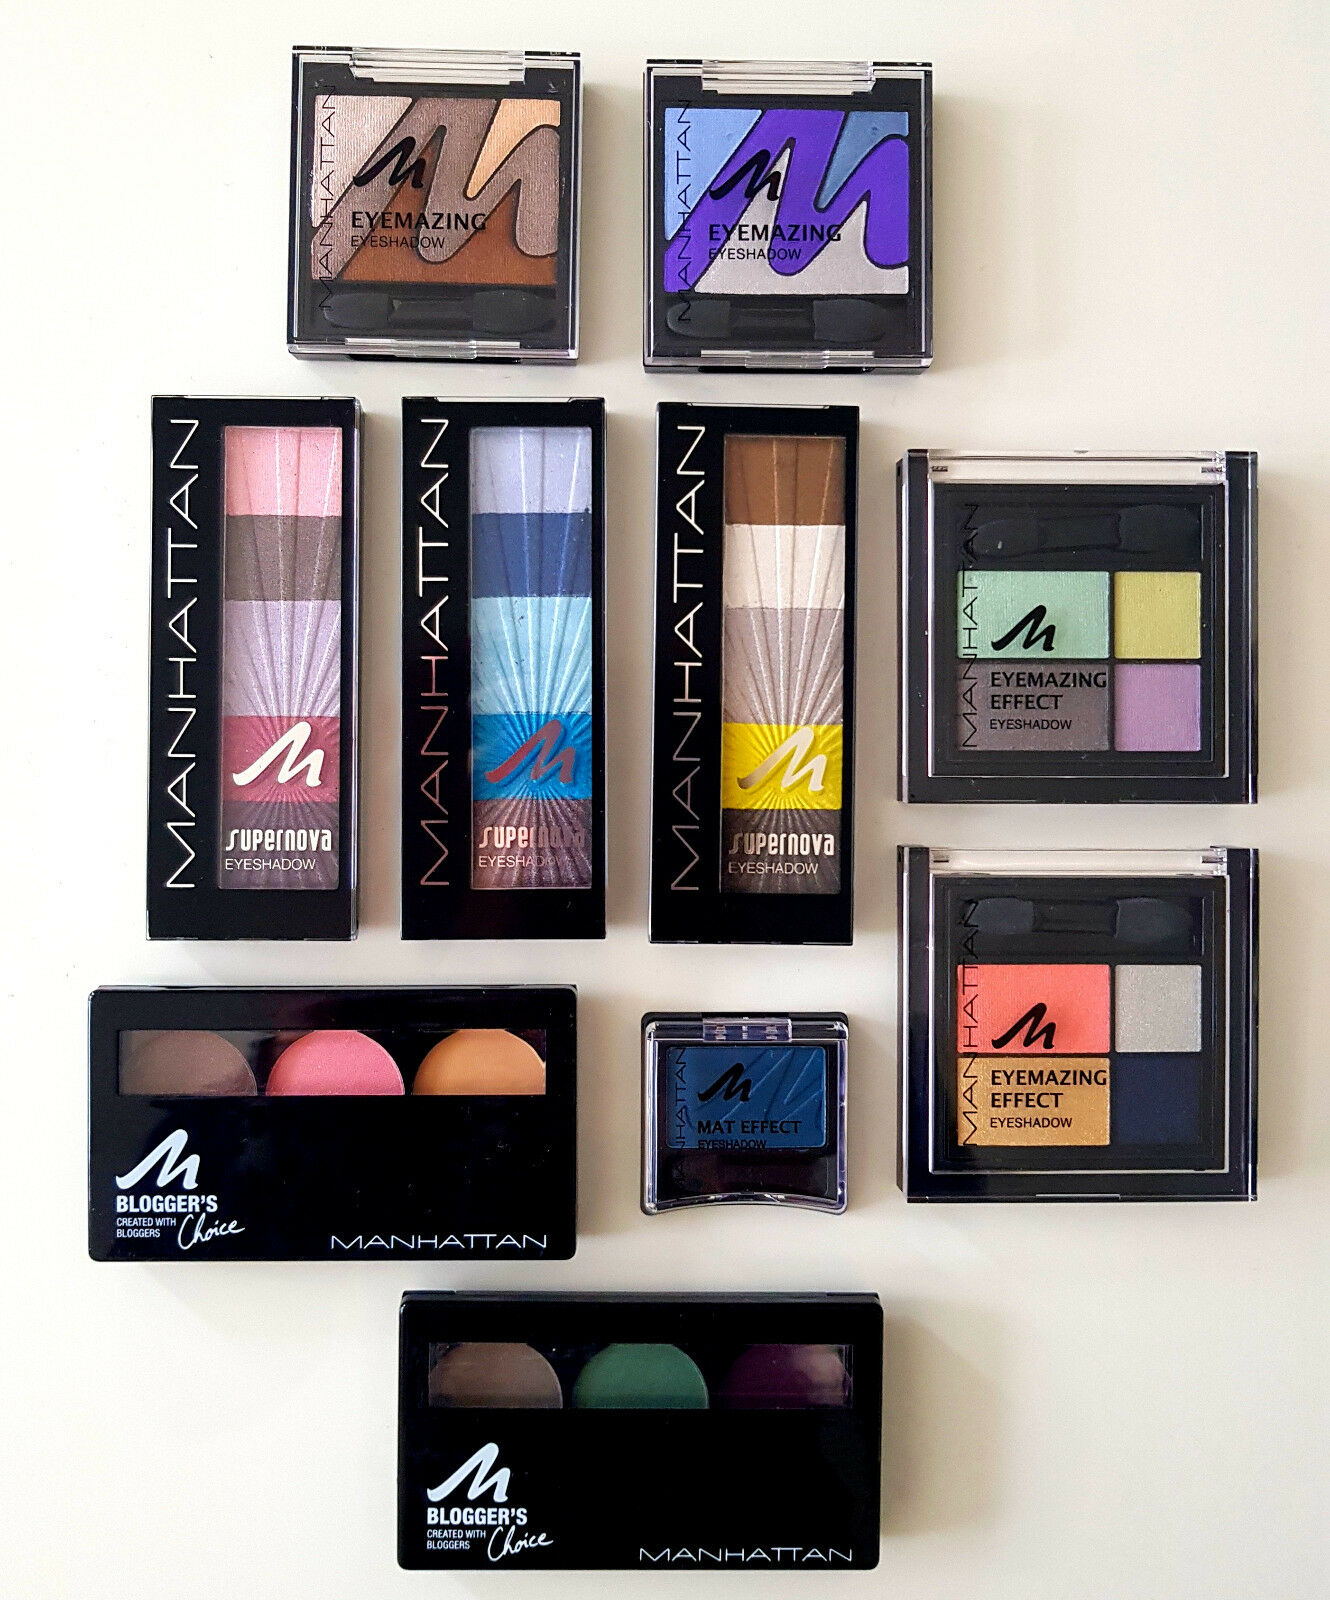 "Manhattan Eyemazing Supernova Blogger""s Matt Lidschatten Eyeshadow ver. Farben"